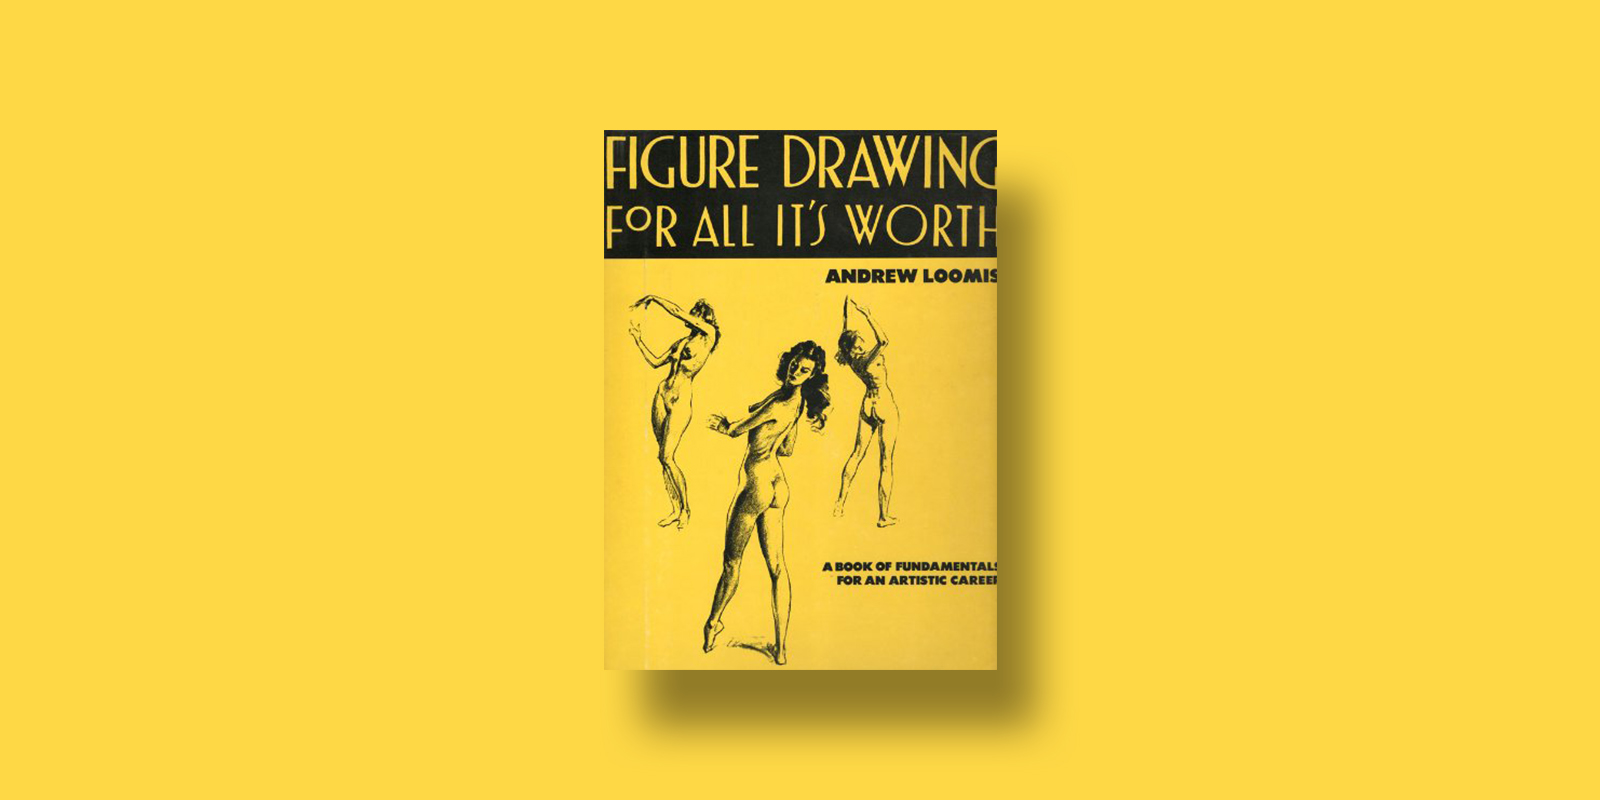 Figure Drawing for All Its Worth Best Illustration Books